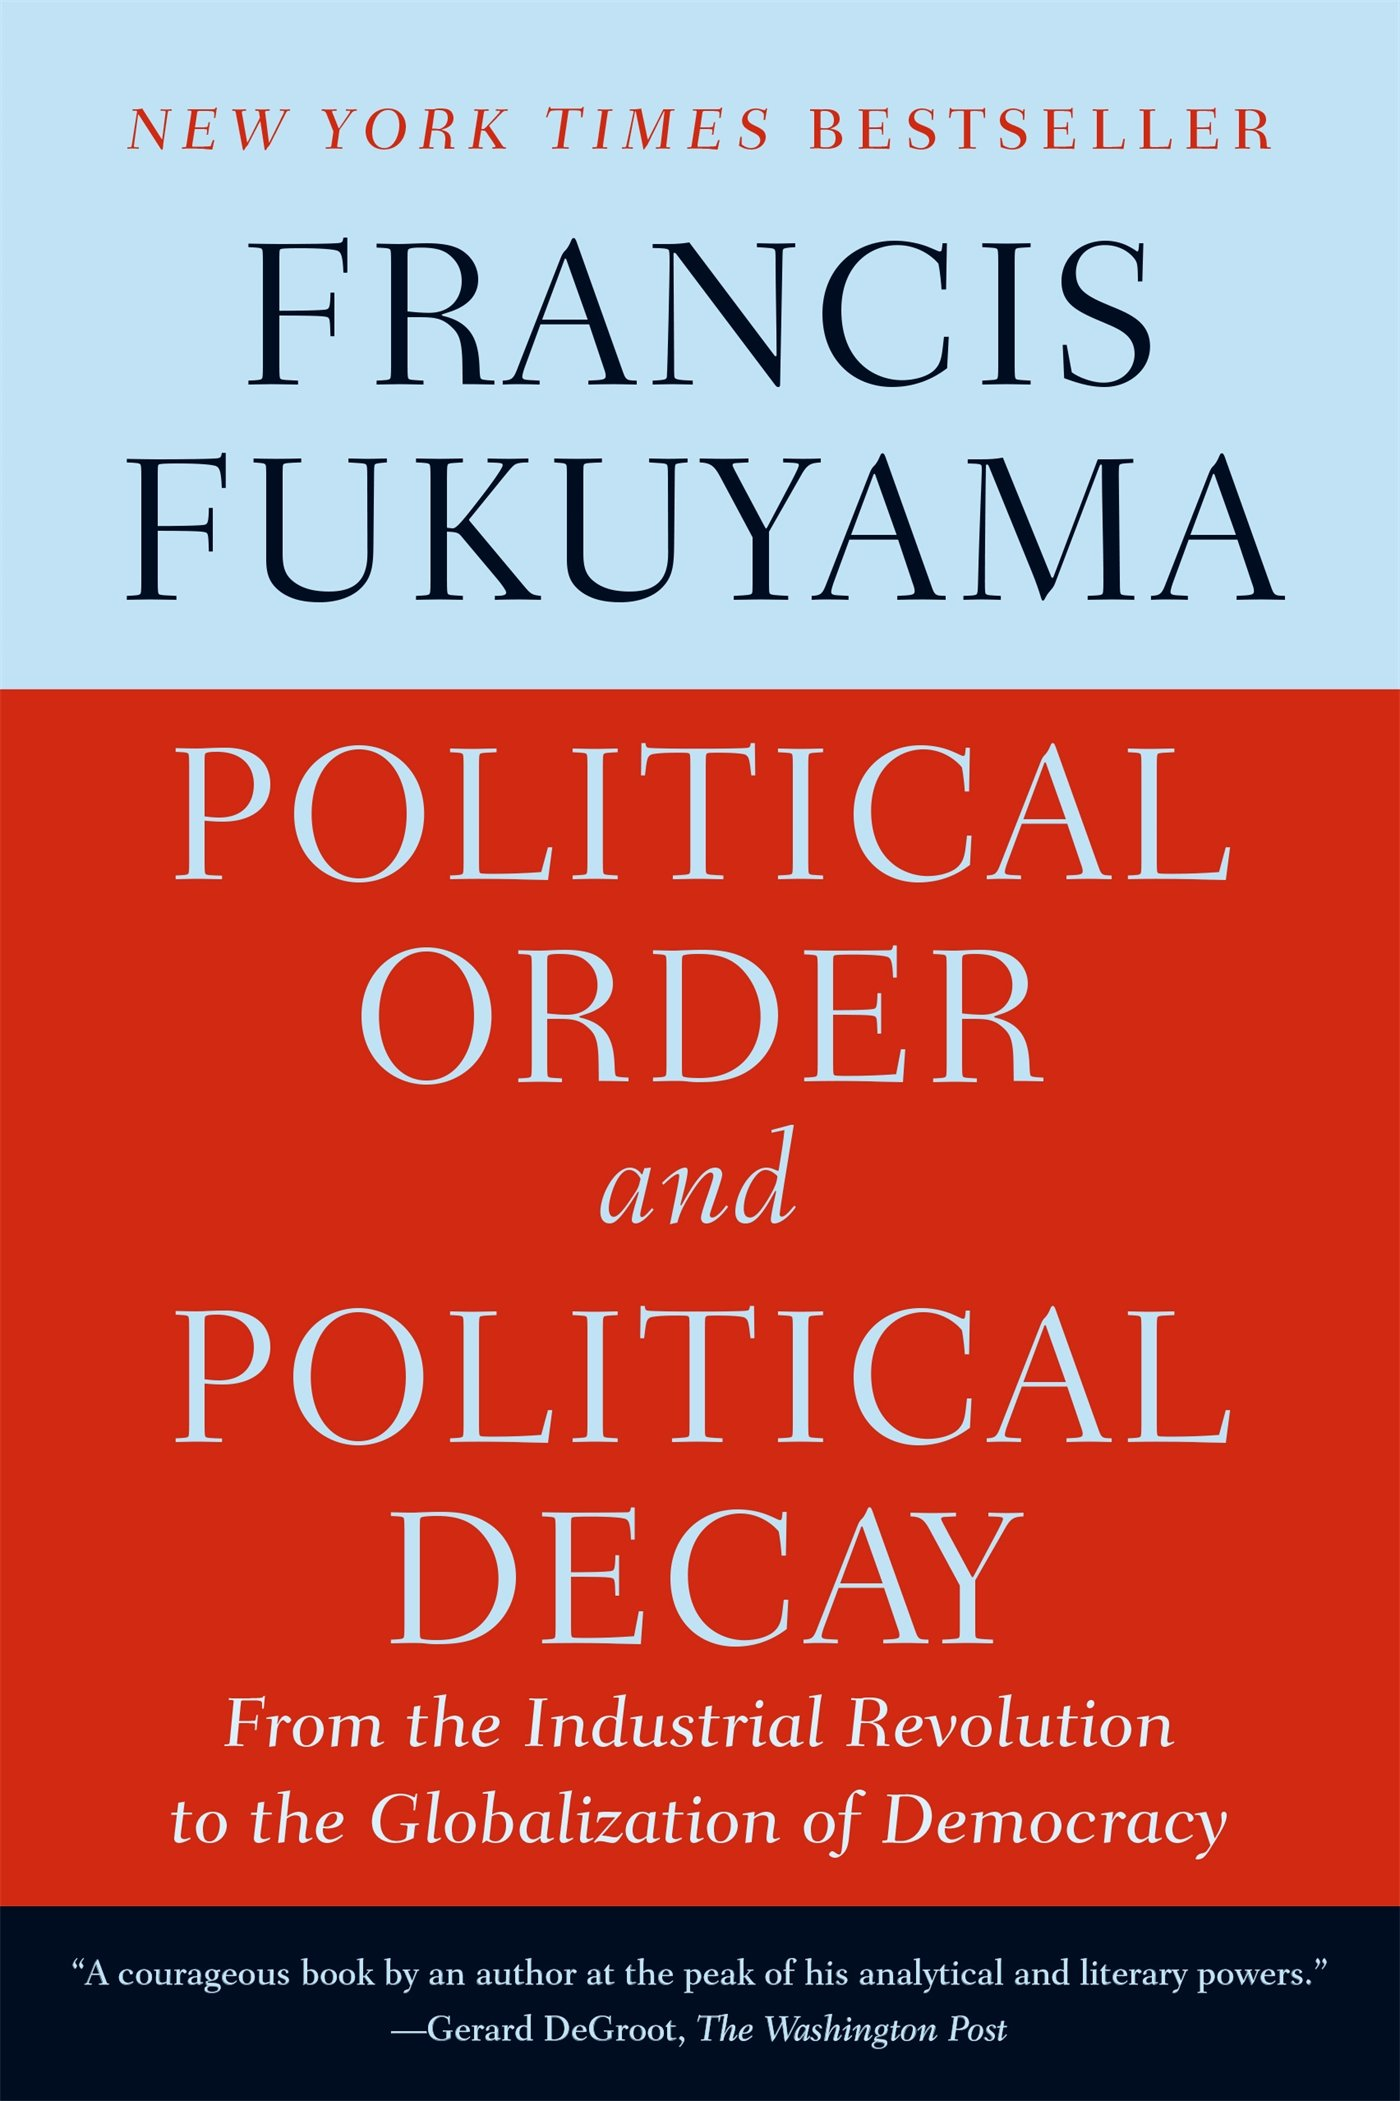 Political Order and Political Decay ISBN-13 9780374535629